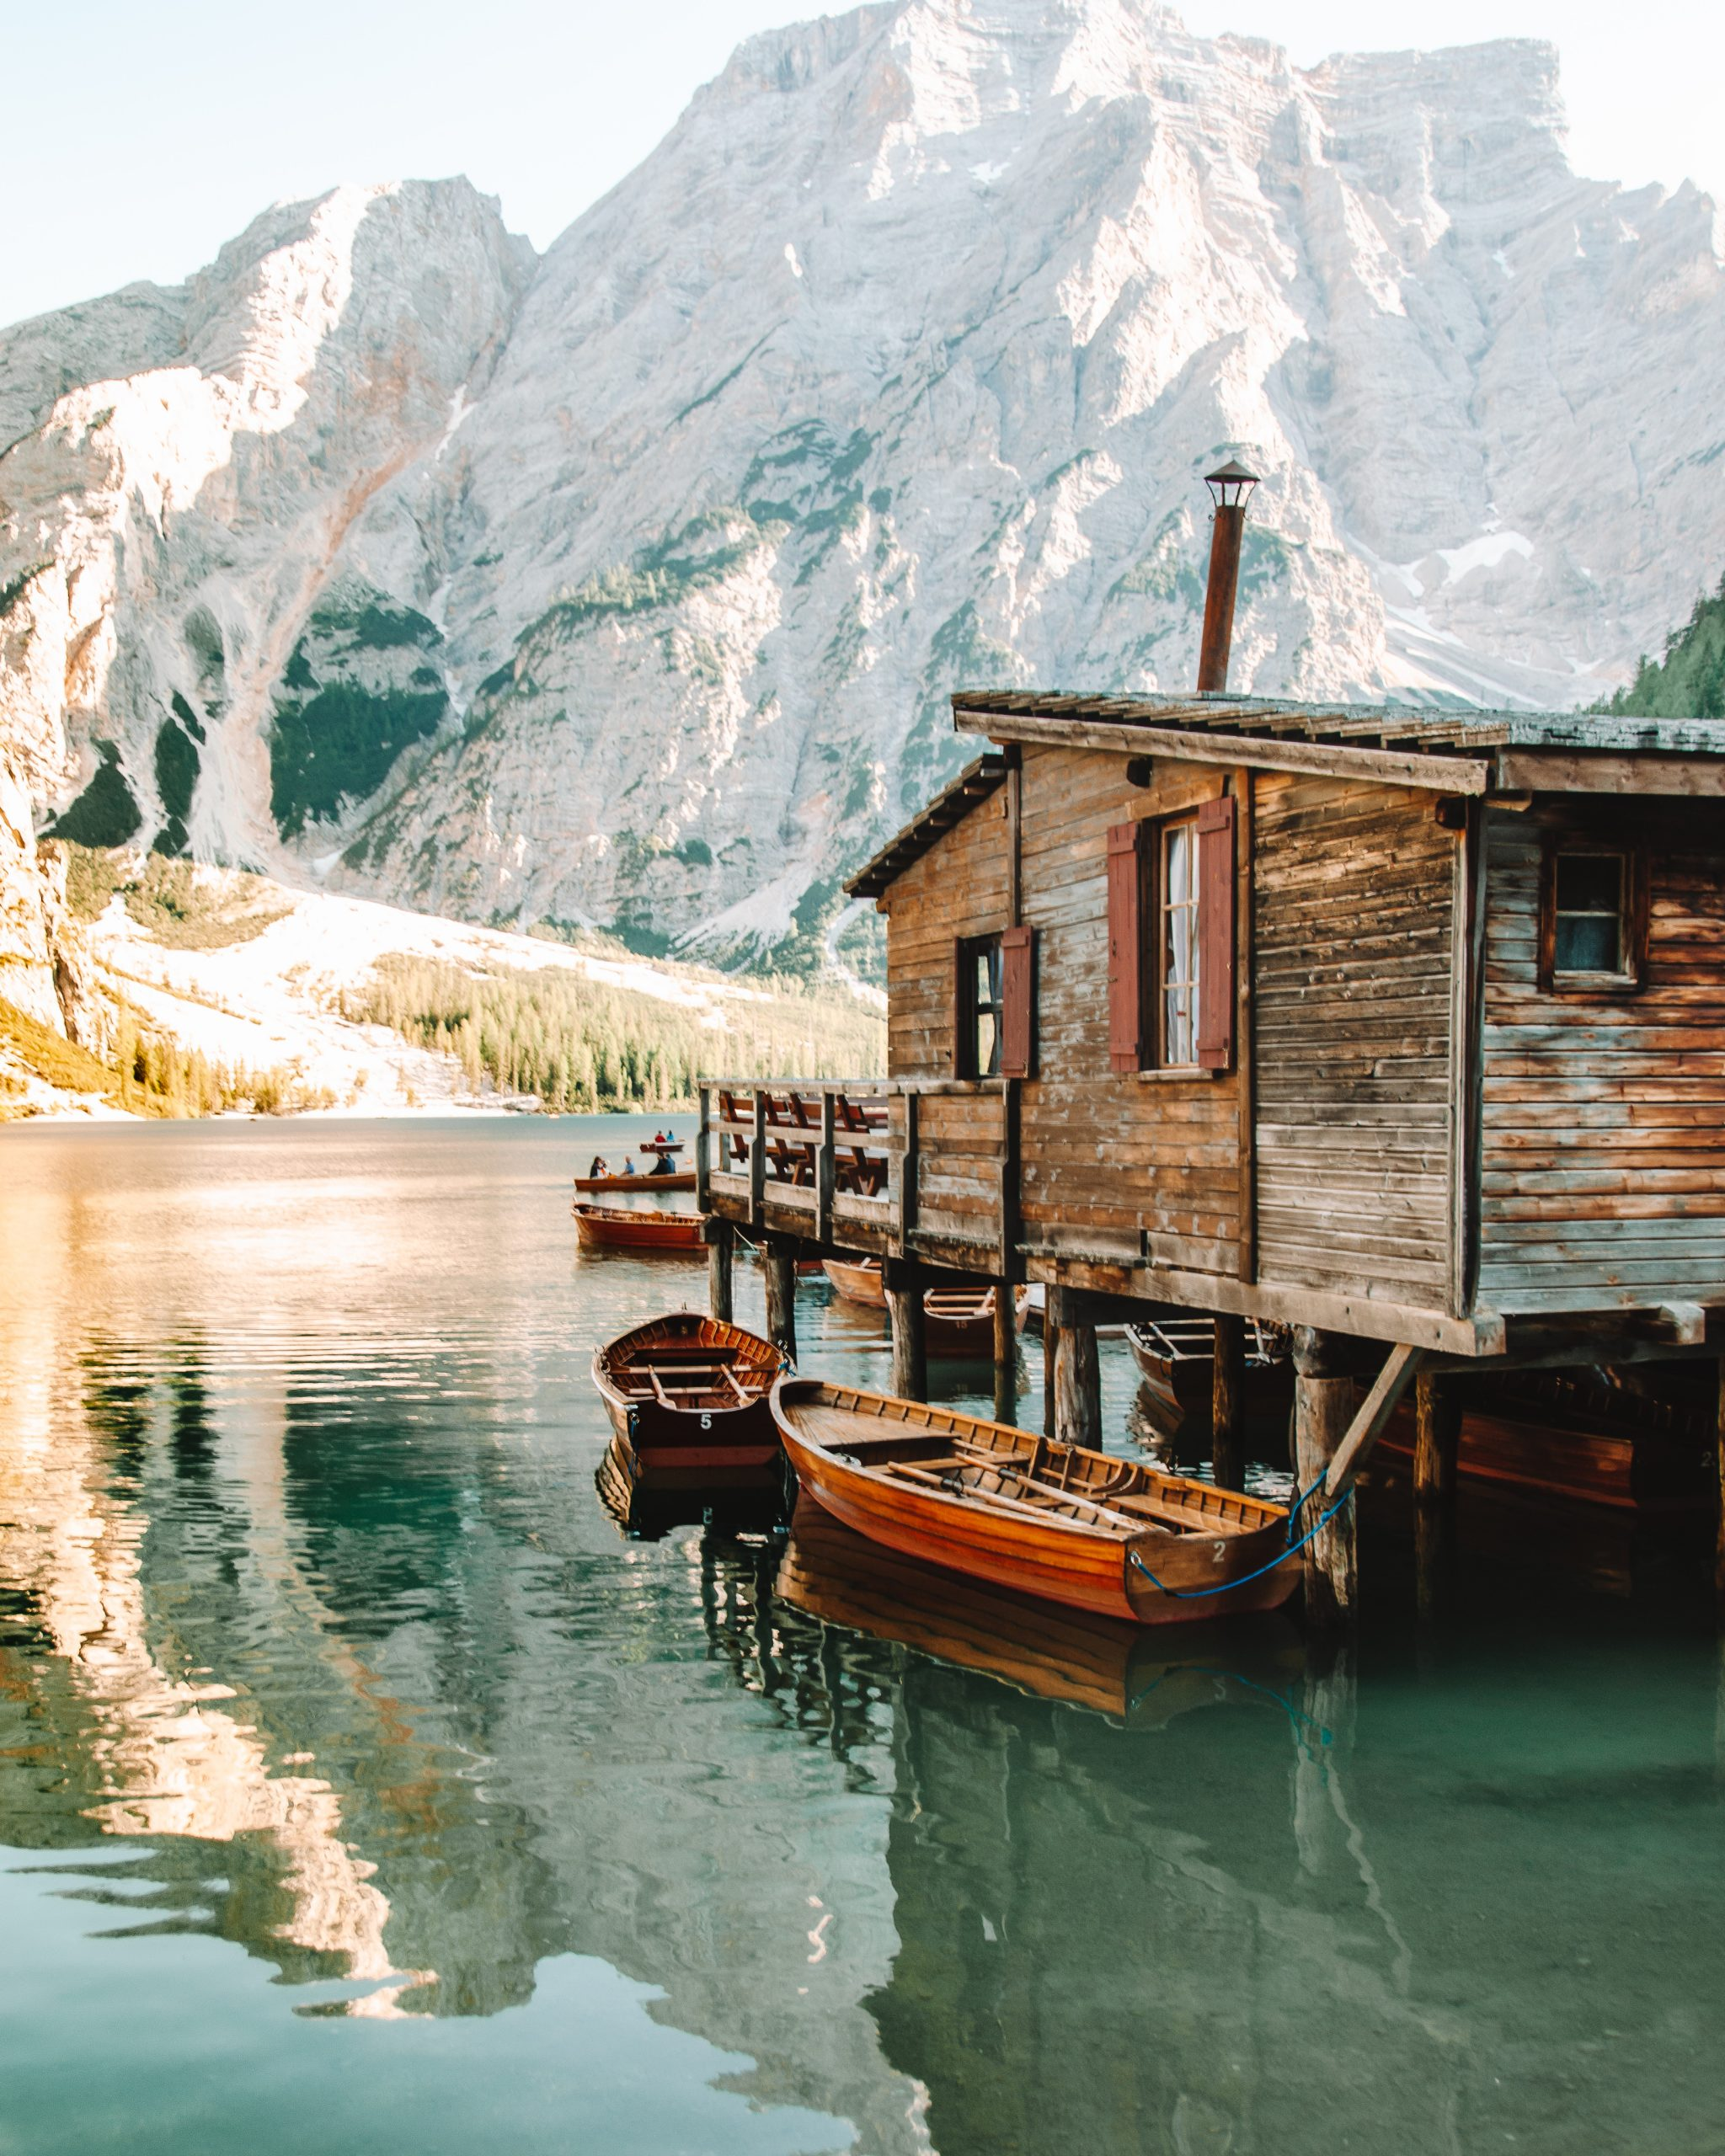 Boat house at Lago di Braies - Dolomites, Italy